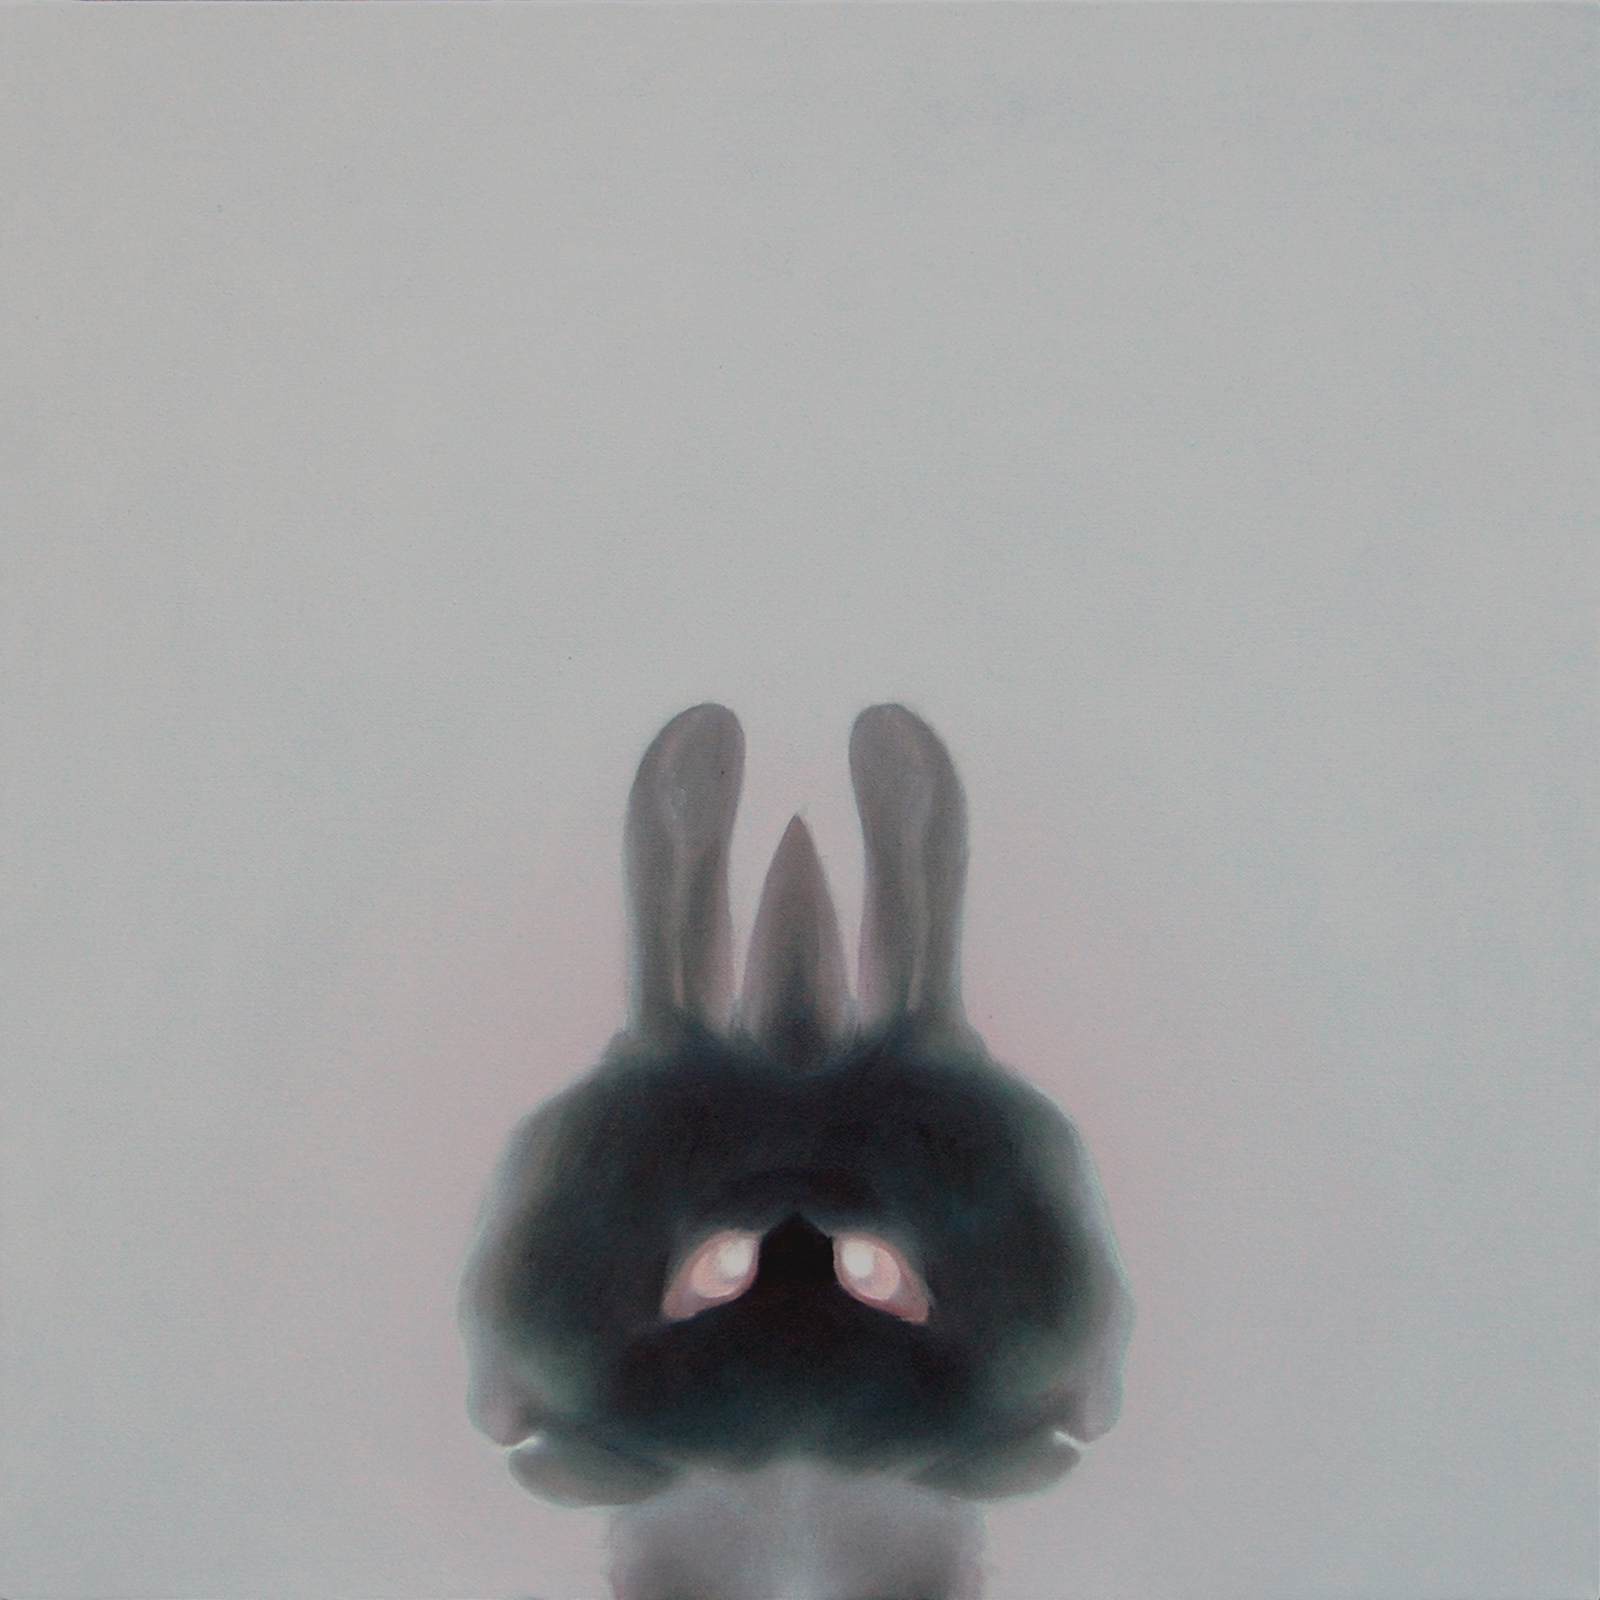 2010 もこもこ(black rabbit) 530×530㎜